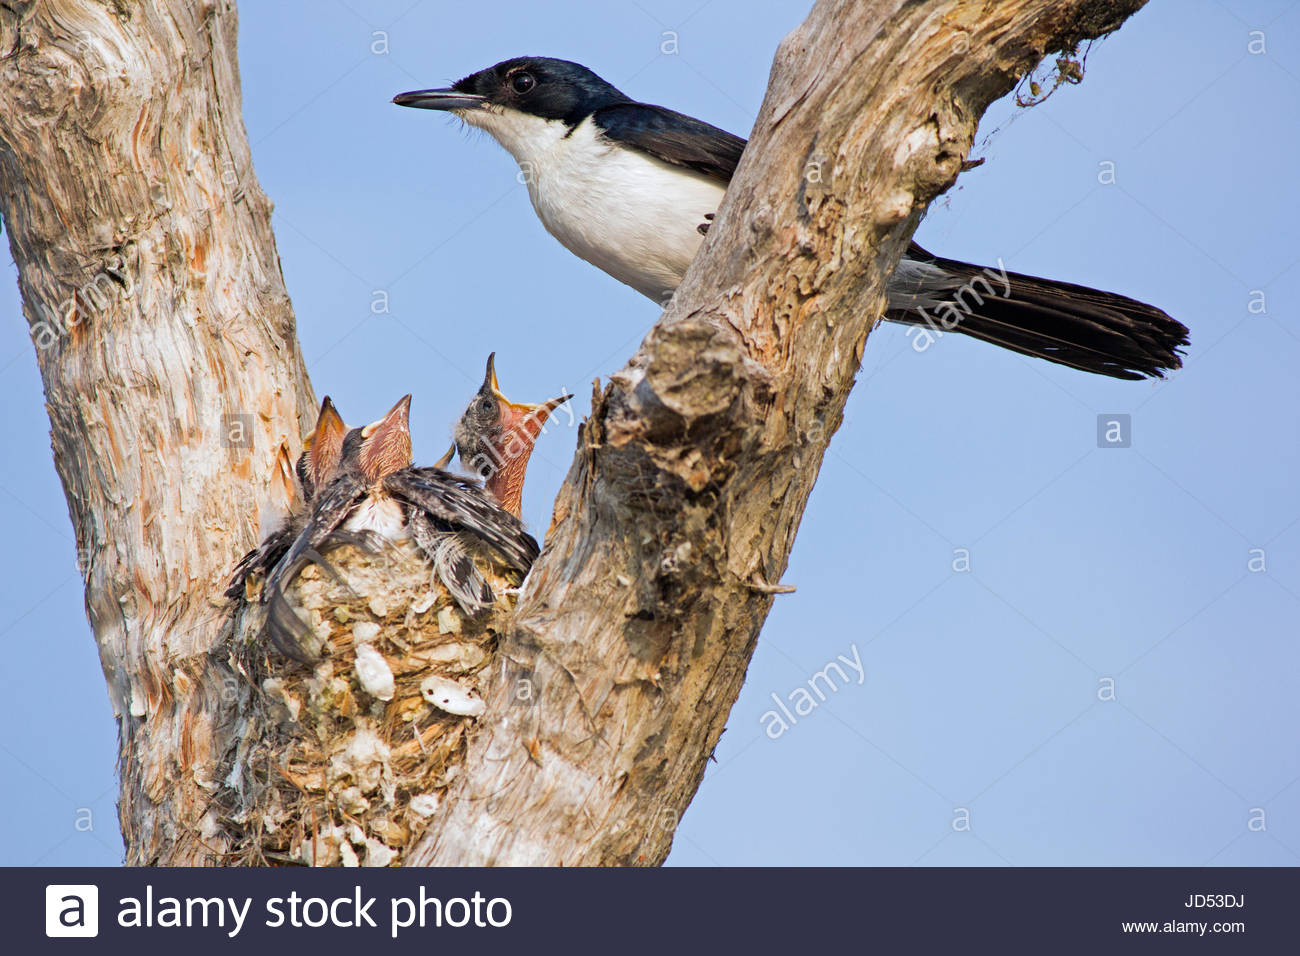 A Restless Flycatcher at it's nest with nestlings calling for food. - Stock Image